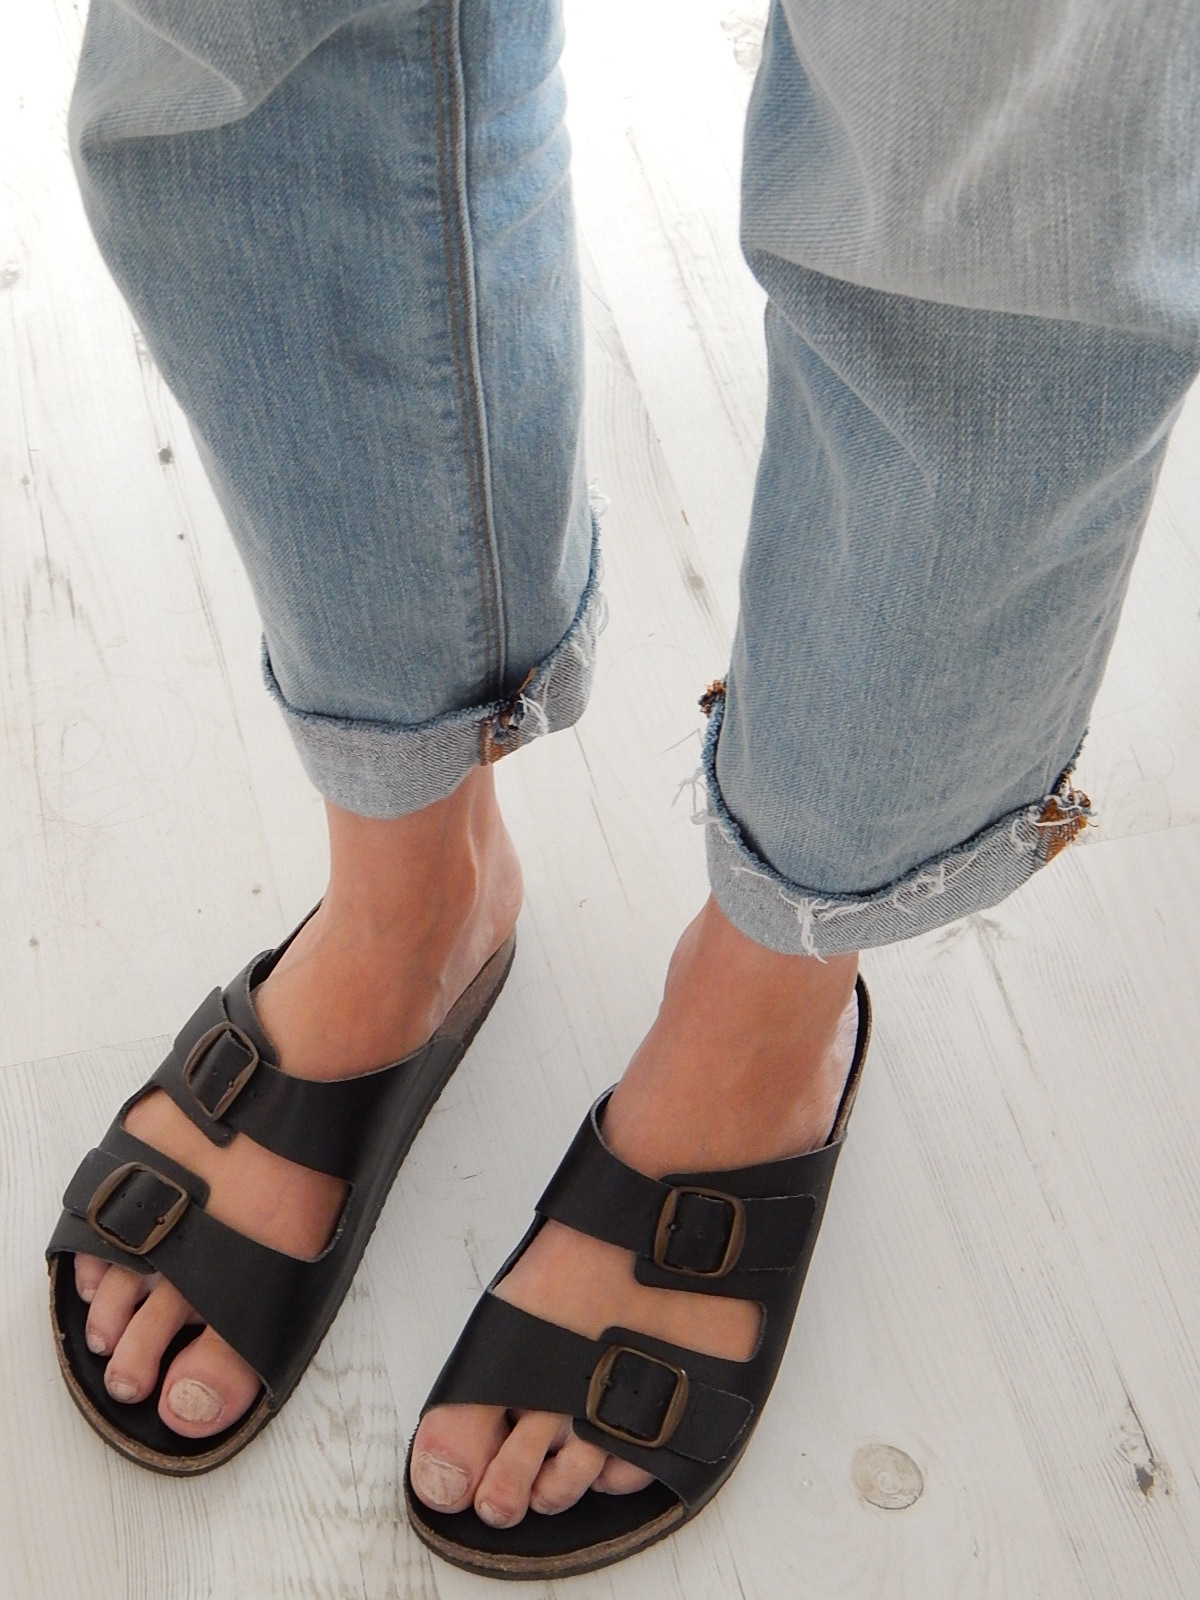 boyfriend jeans and birkenstocks